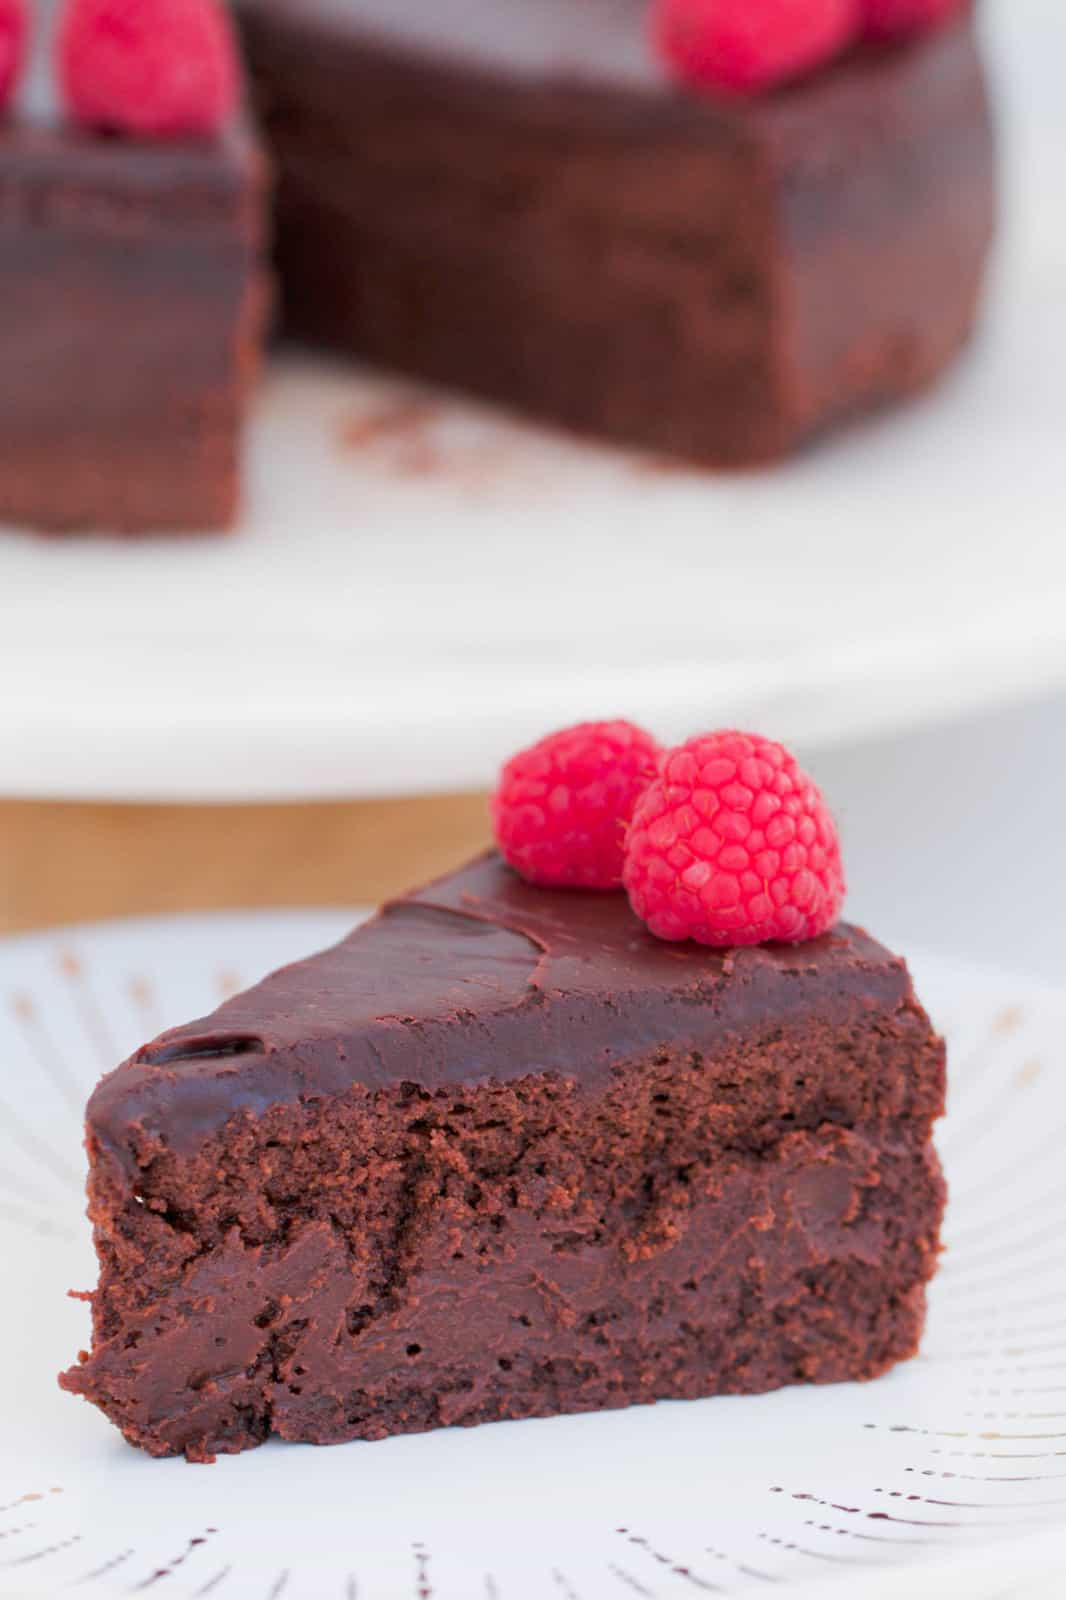 A slice of chocolate mousse cake topped with ganache and raspberries on a white plate.